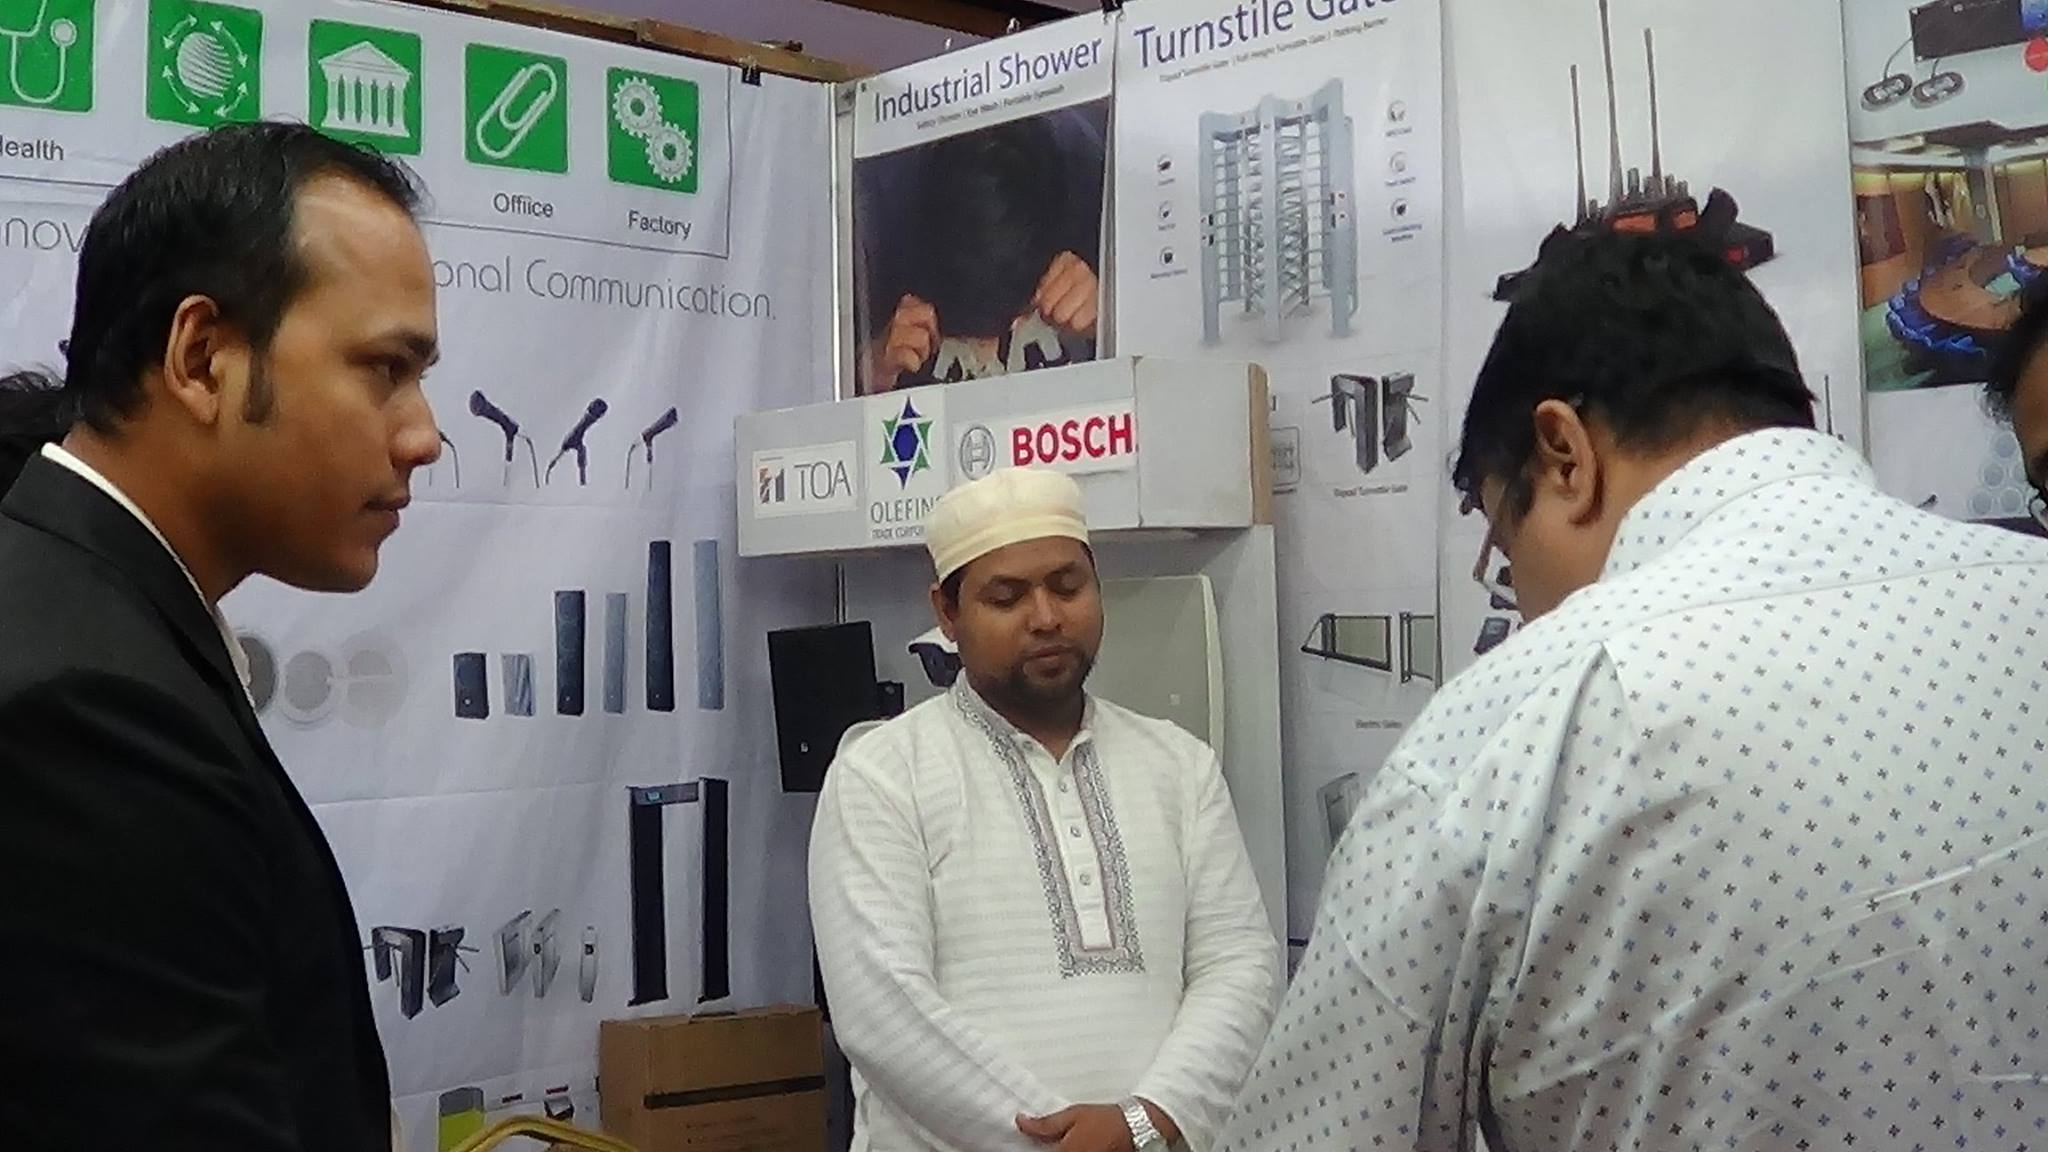 SAFECON 2017 - Exhibition in Bangladesh